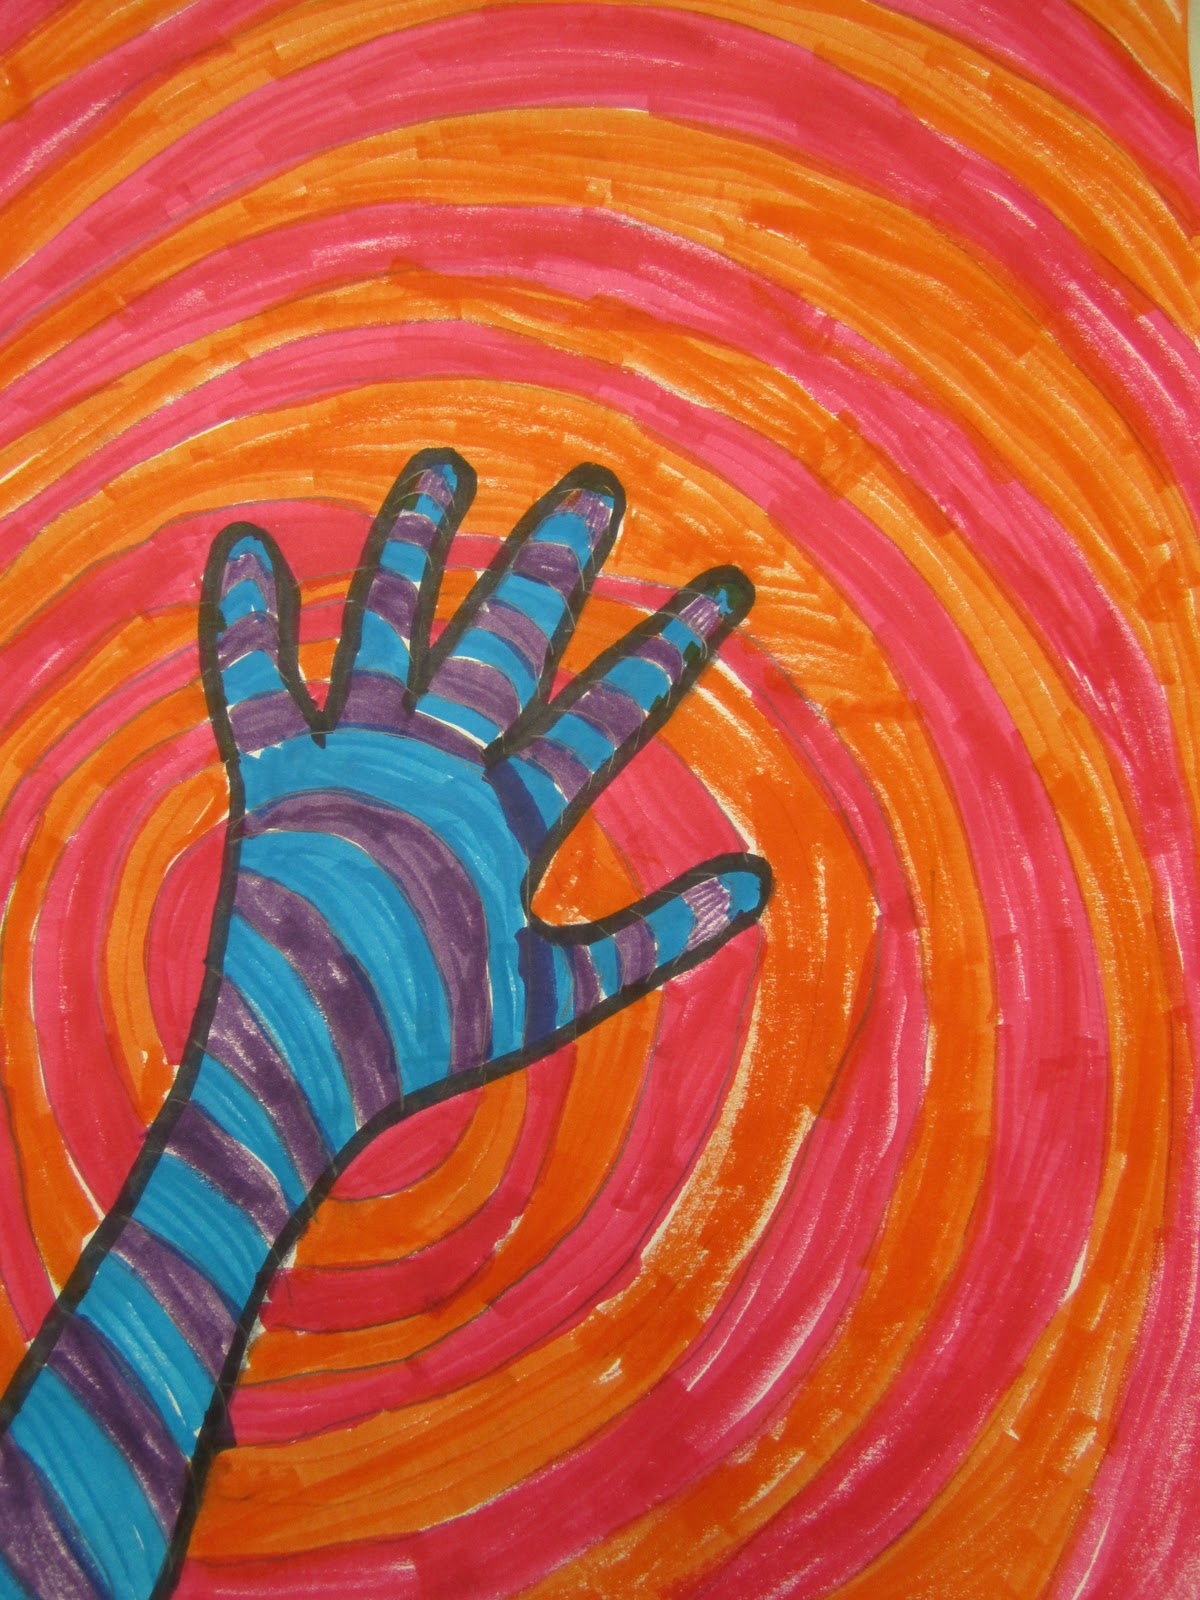 Crafts For Second Graders http://thinkcreateart.blogspot.com/2011/02/warm-and-cool-color-hands-2nd-grade.html